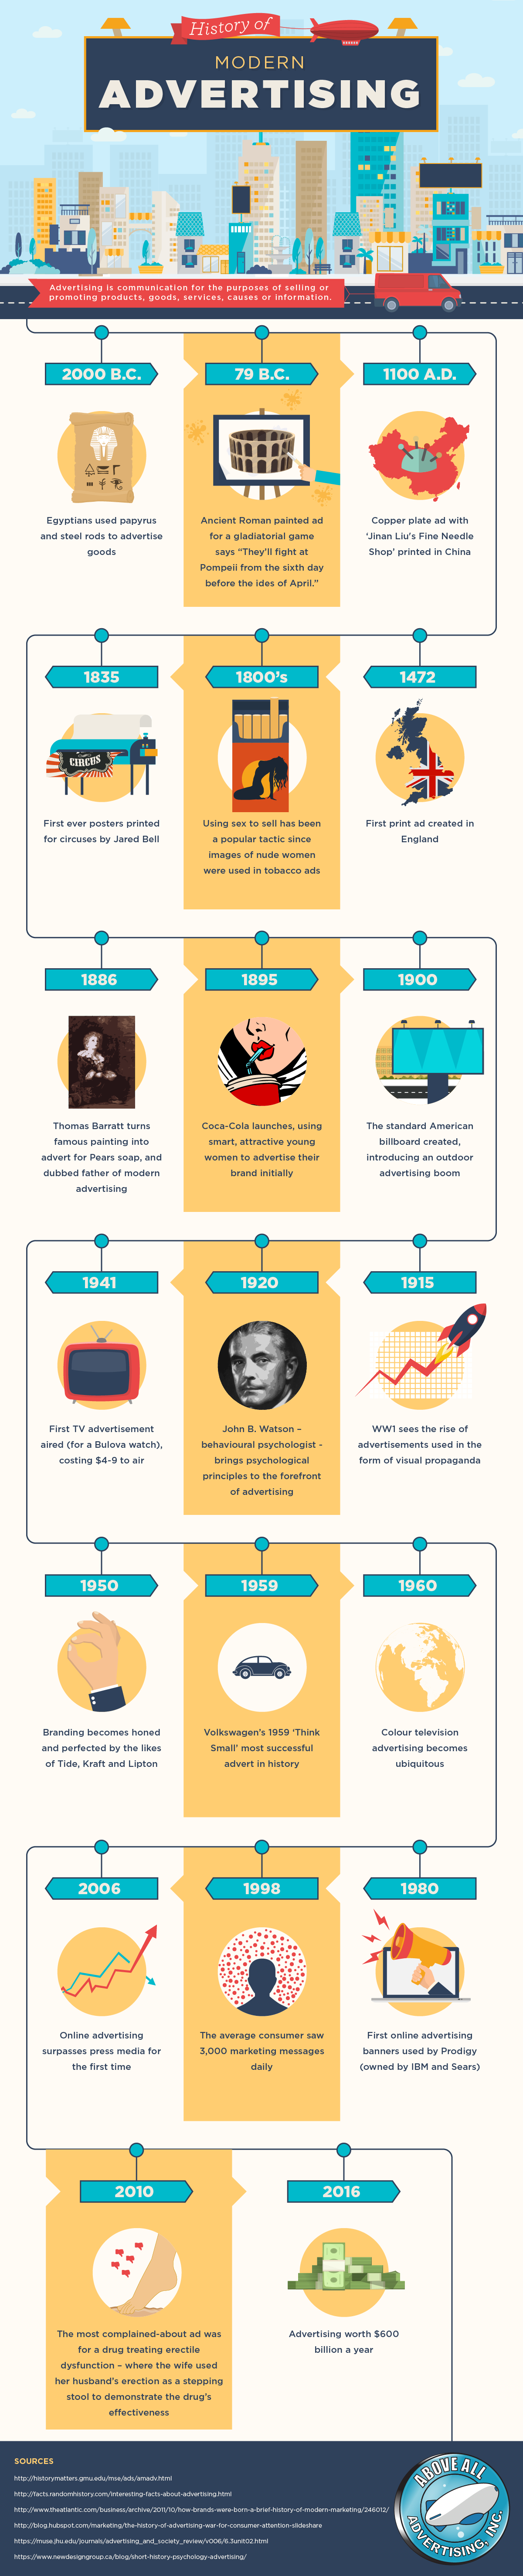 history of modern advertising